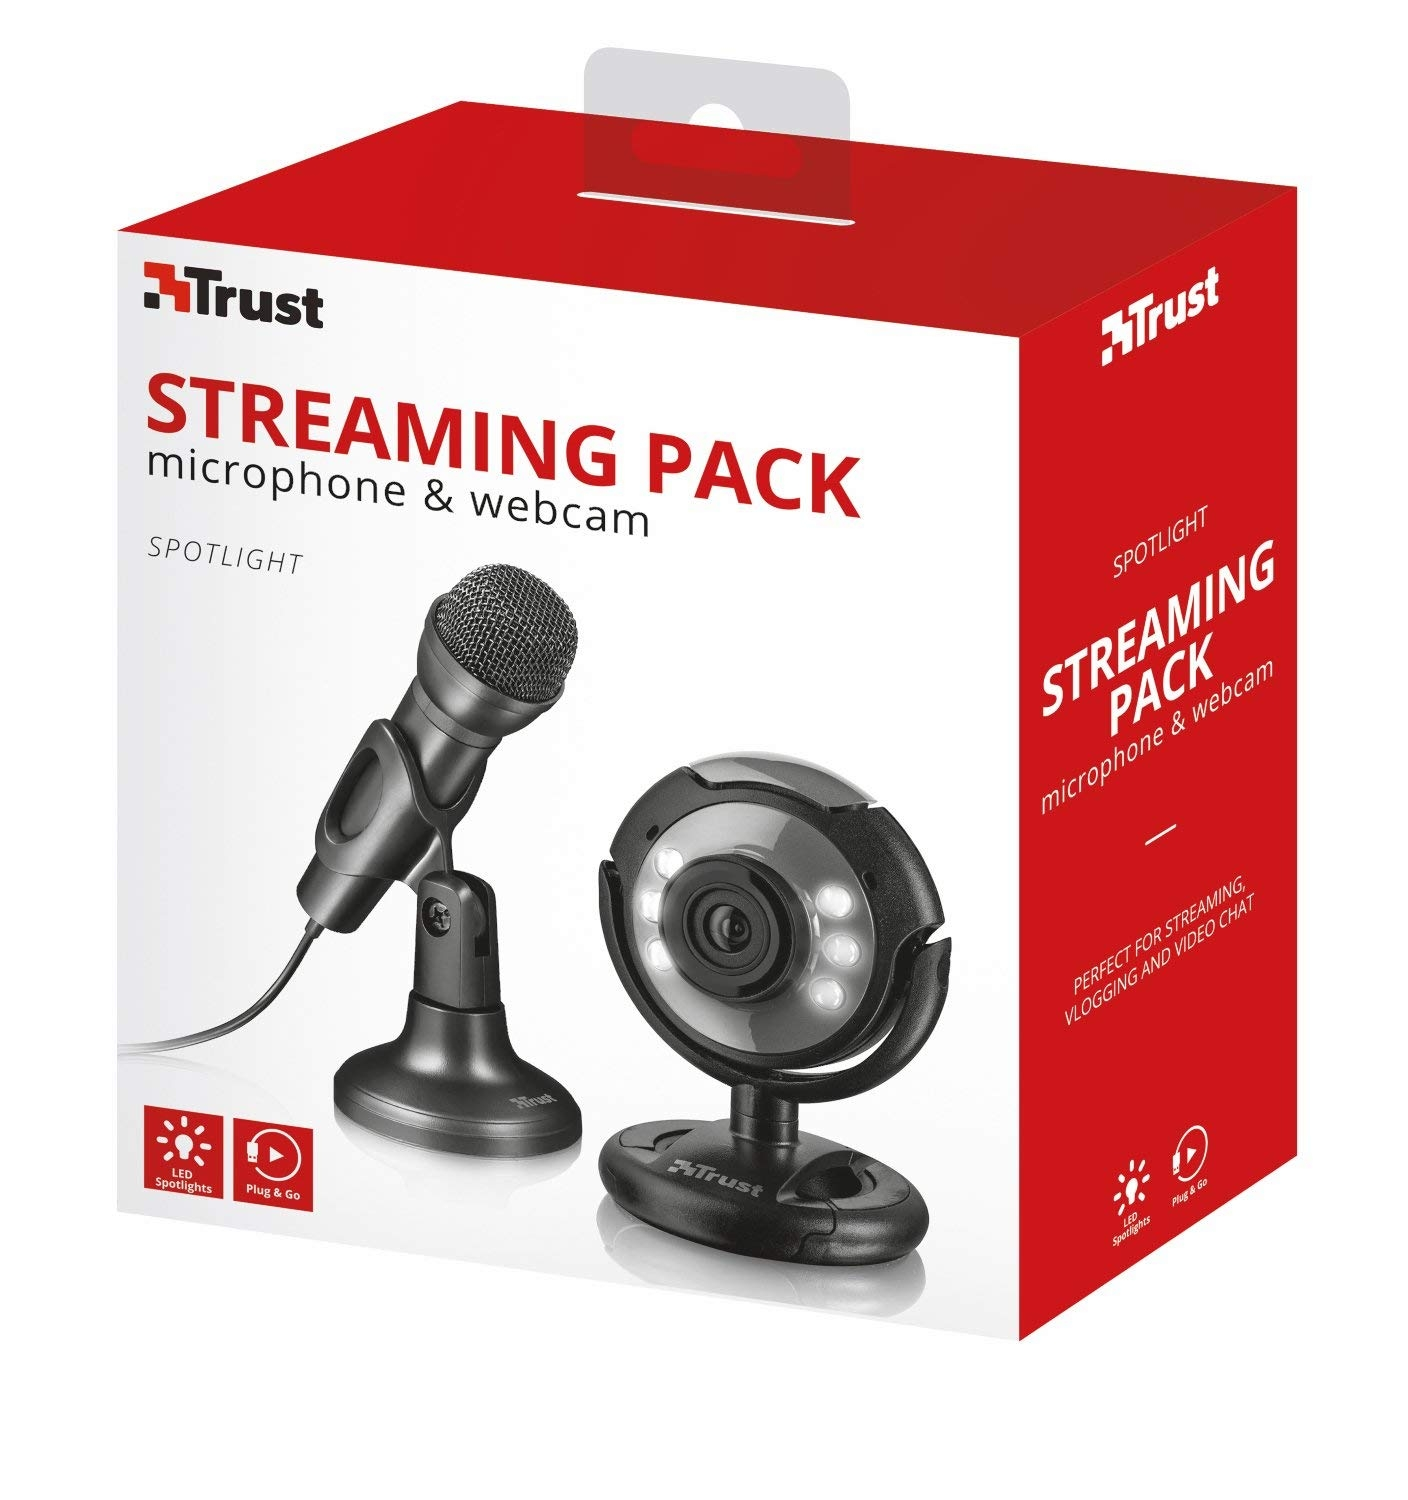 STREAMING DECK, BLACK FRIDAY STREAMING DECK BLACK FRIDAY DEALS BLACK FRIDAY PC